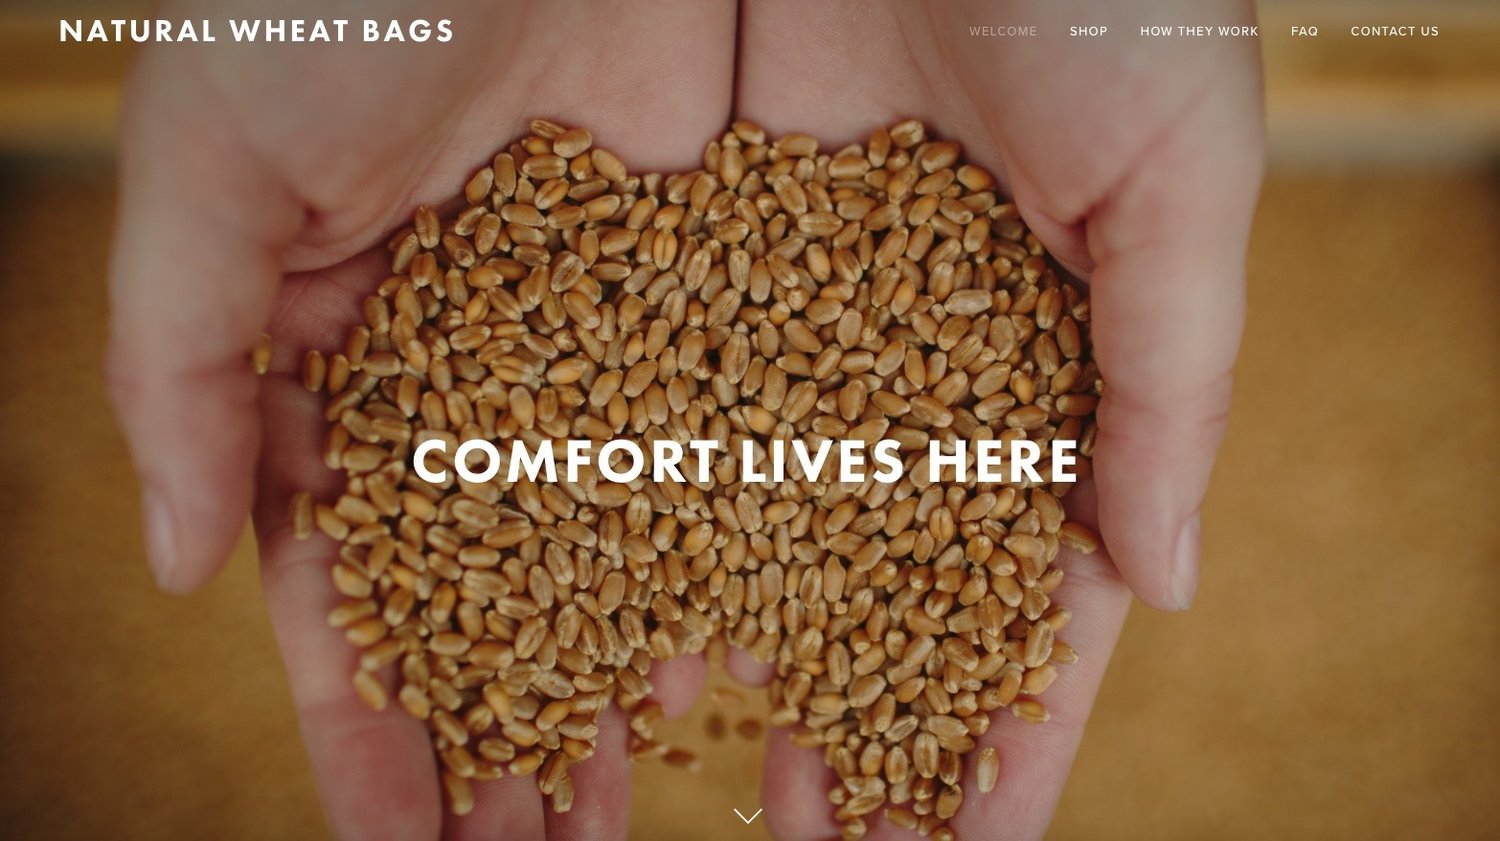 Natural Wheat Bags